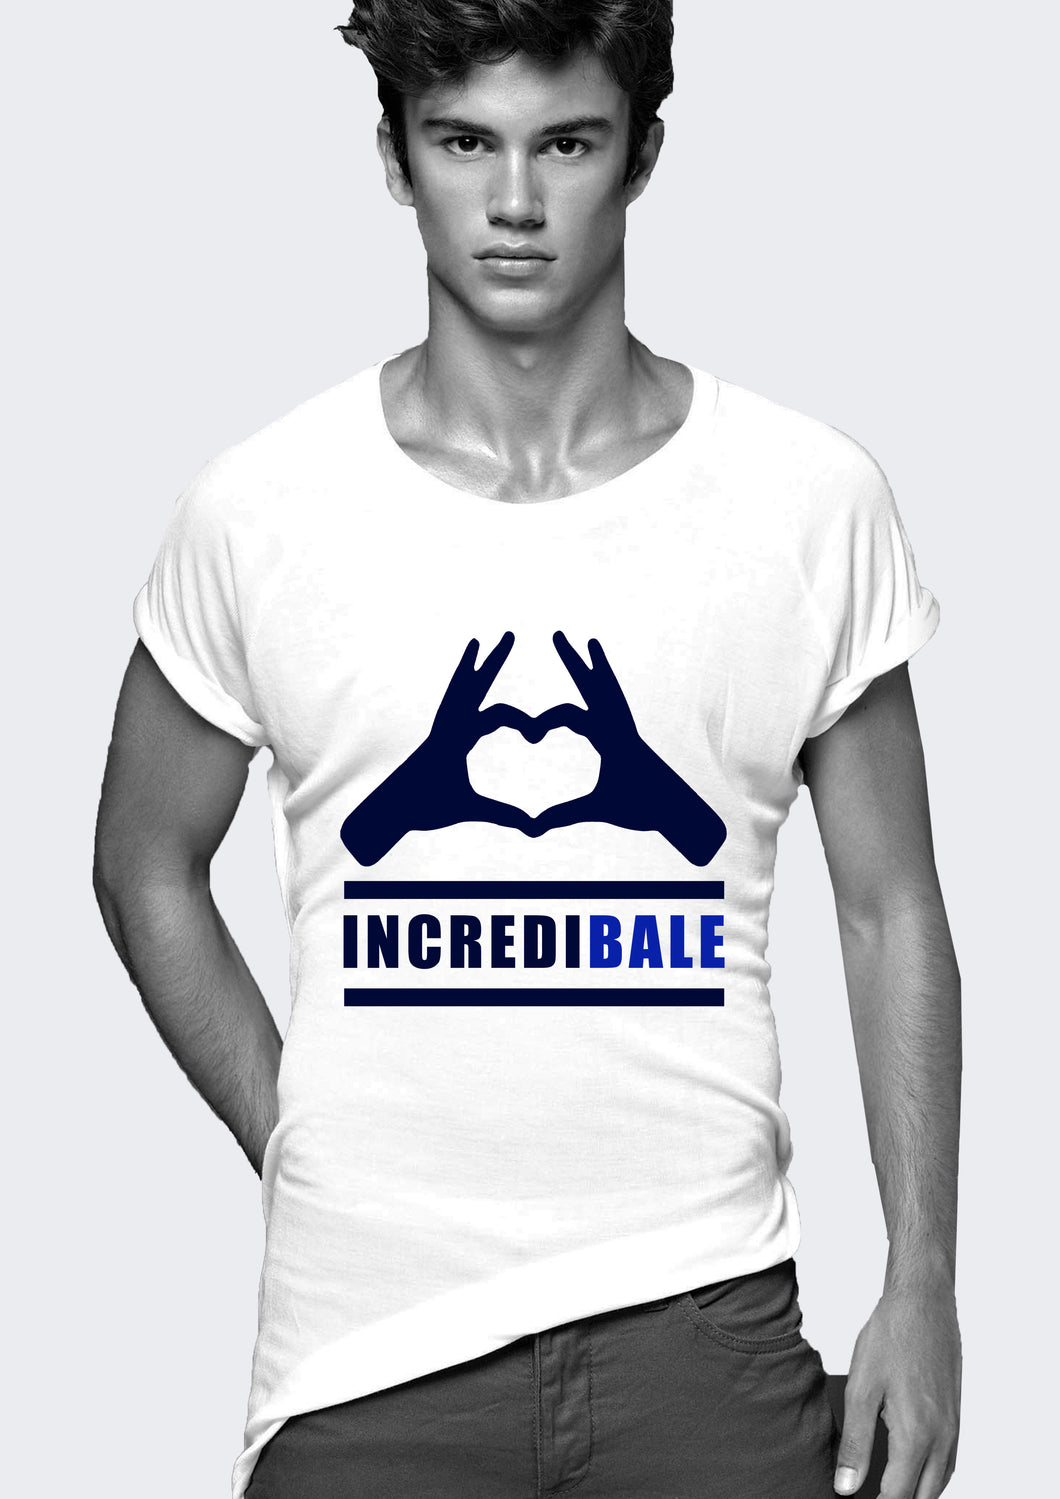 Real Madrid Gareth Bale T- shirt